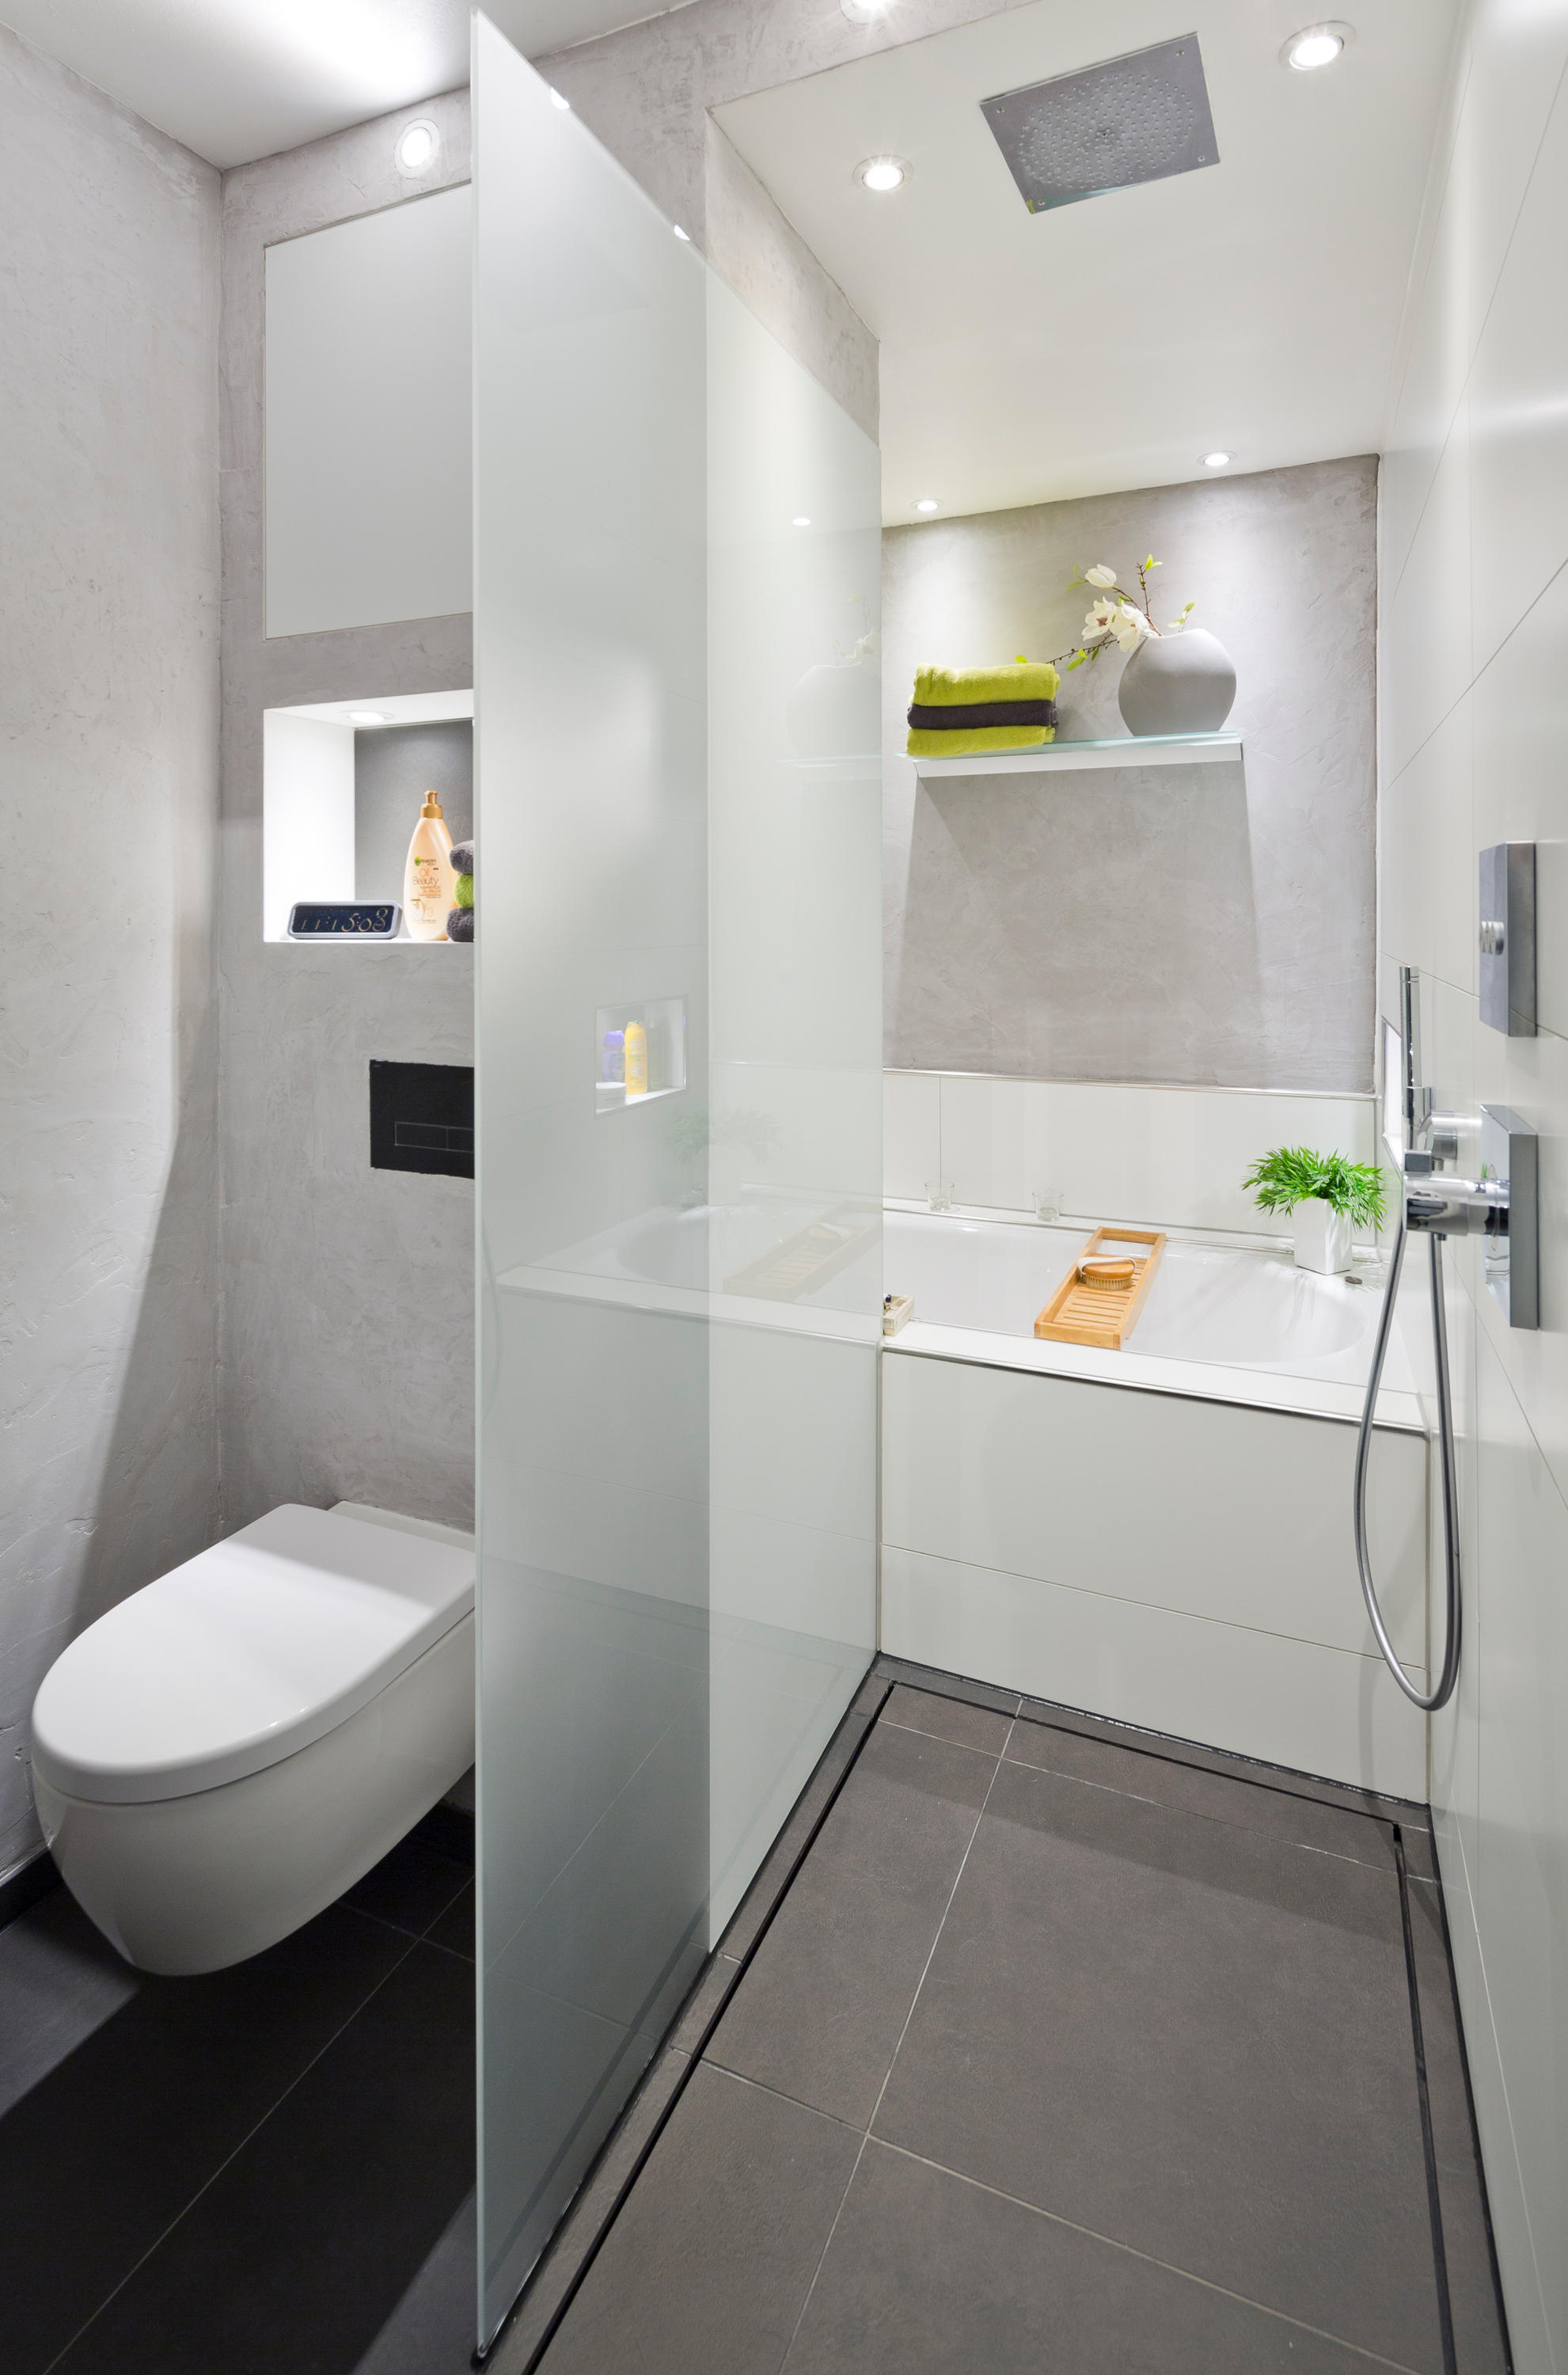 Salle De Bain Italienne Photos Duschelement - Shower Trays From Baqua | Architonic